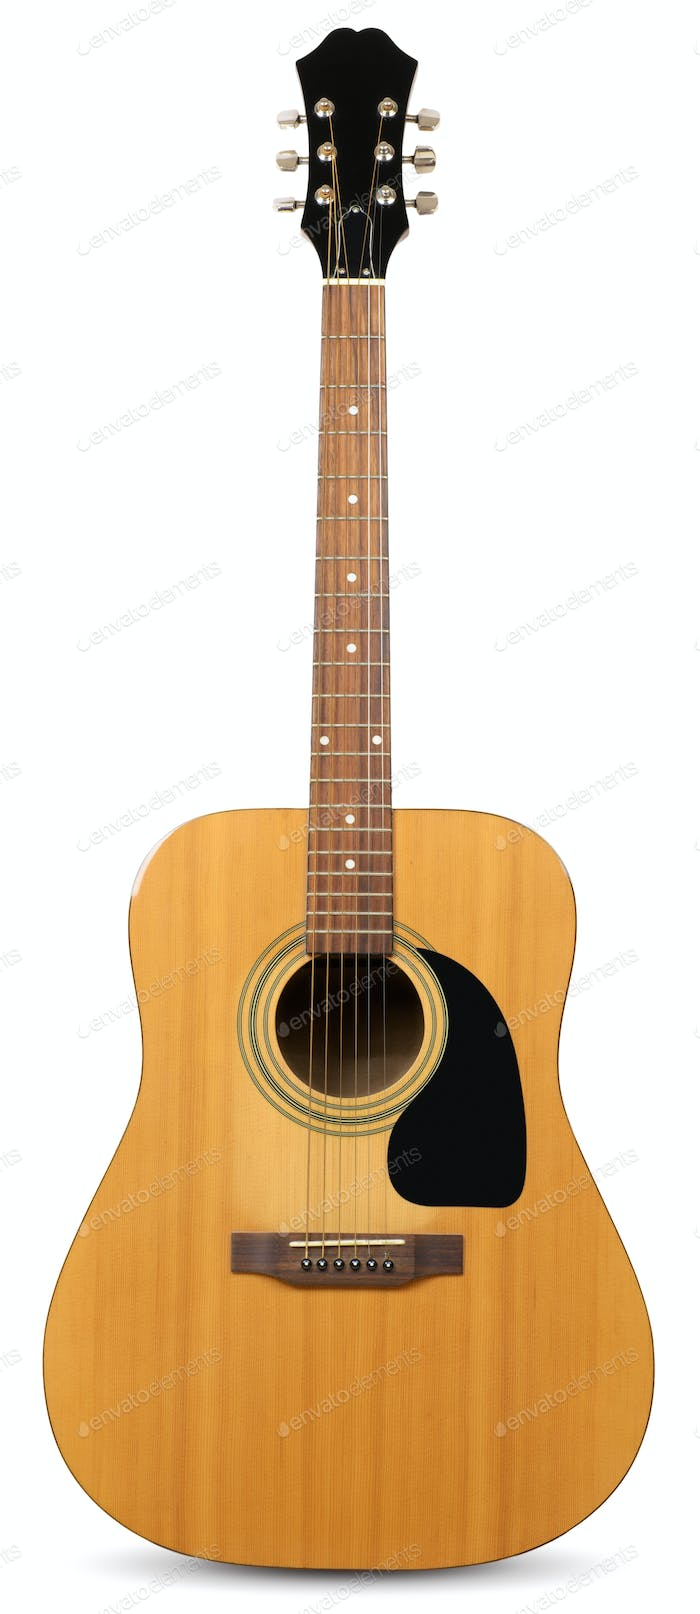 guitar isolated on a white